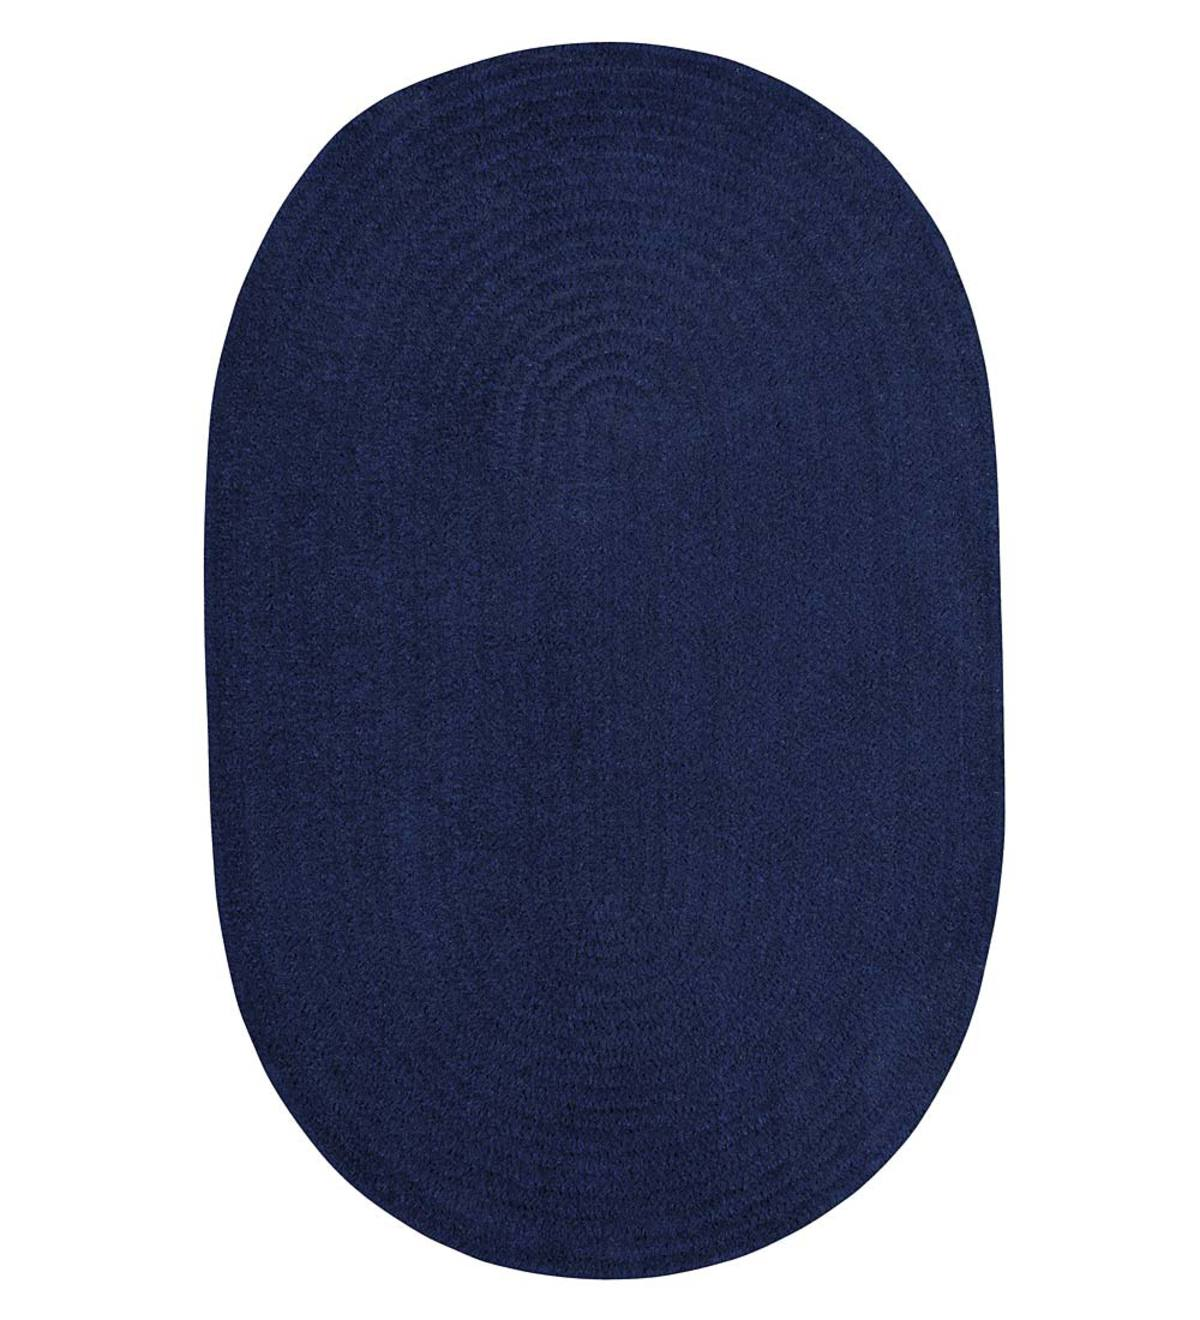 Chenille Oval Braided Area Rug, 3' x 5' - Midnight Navy